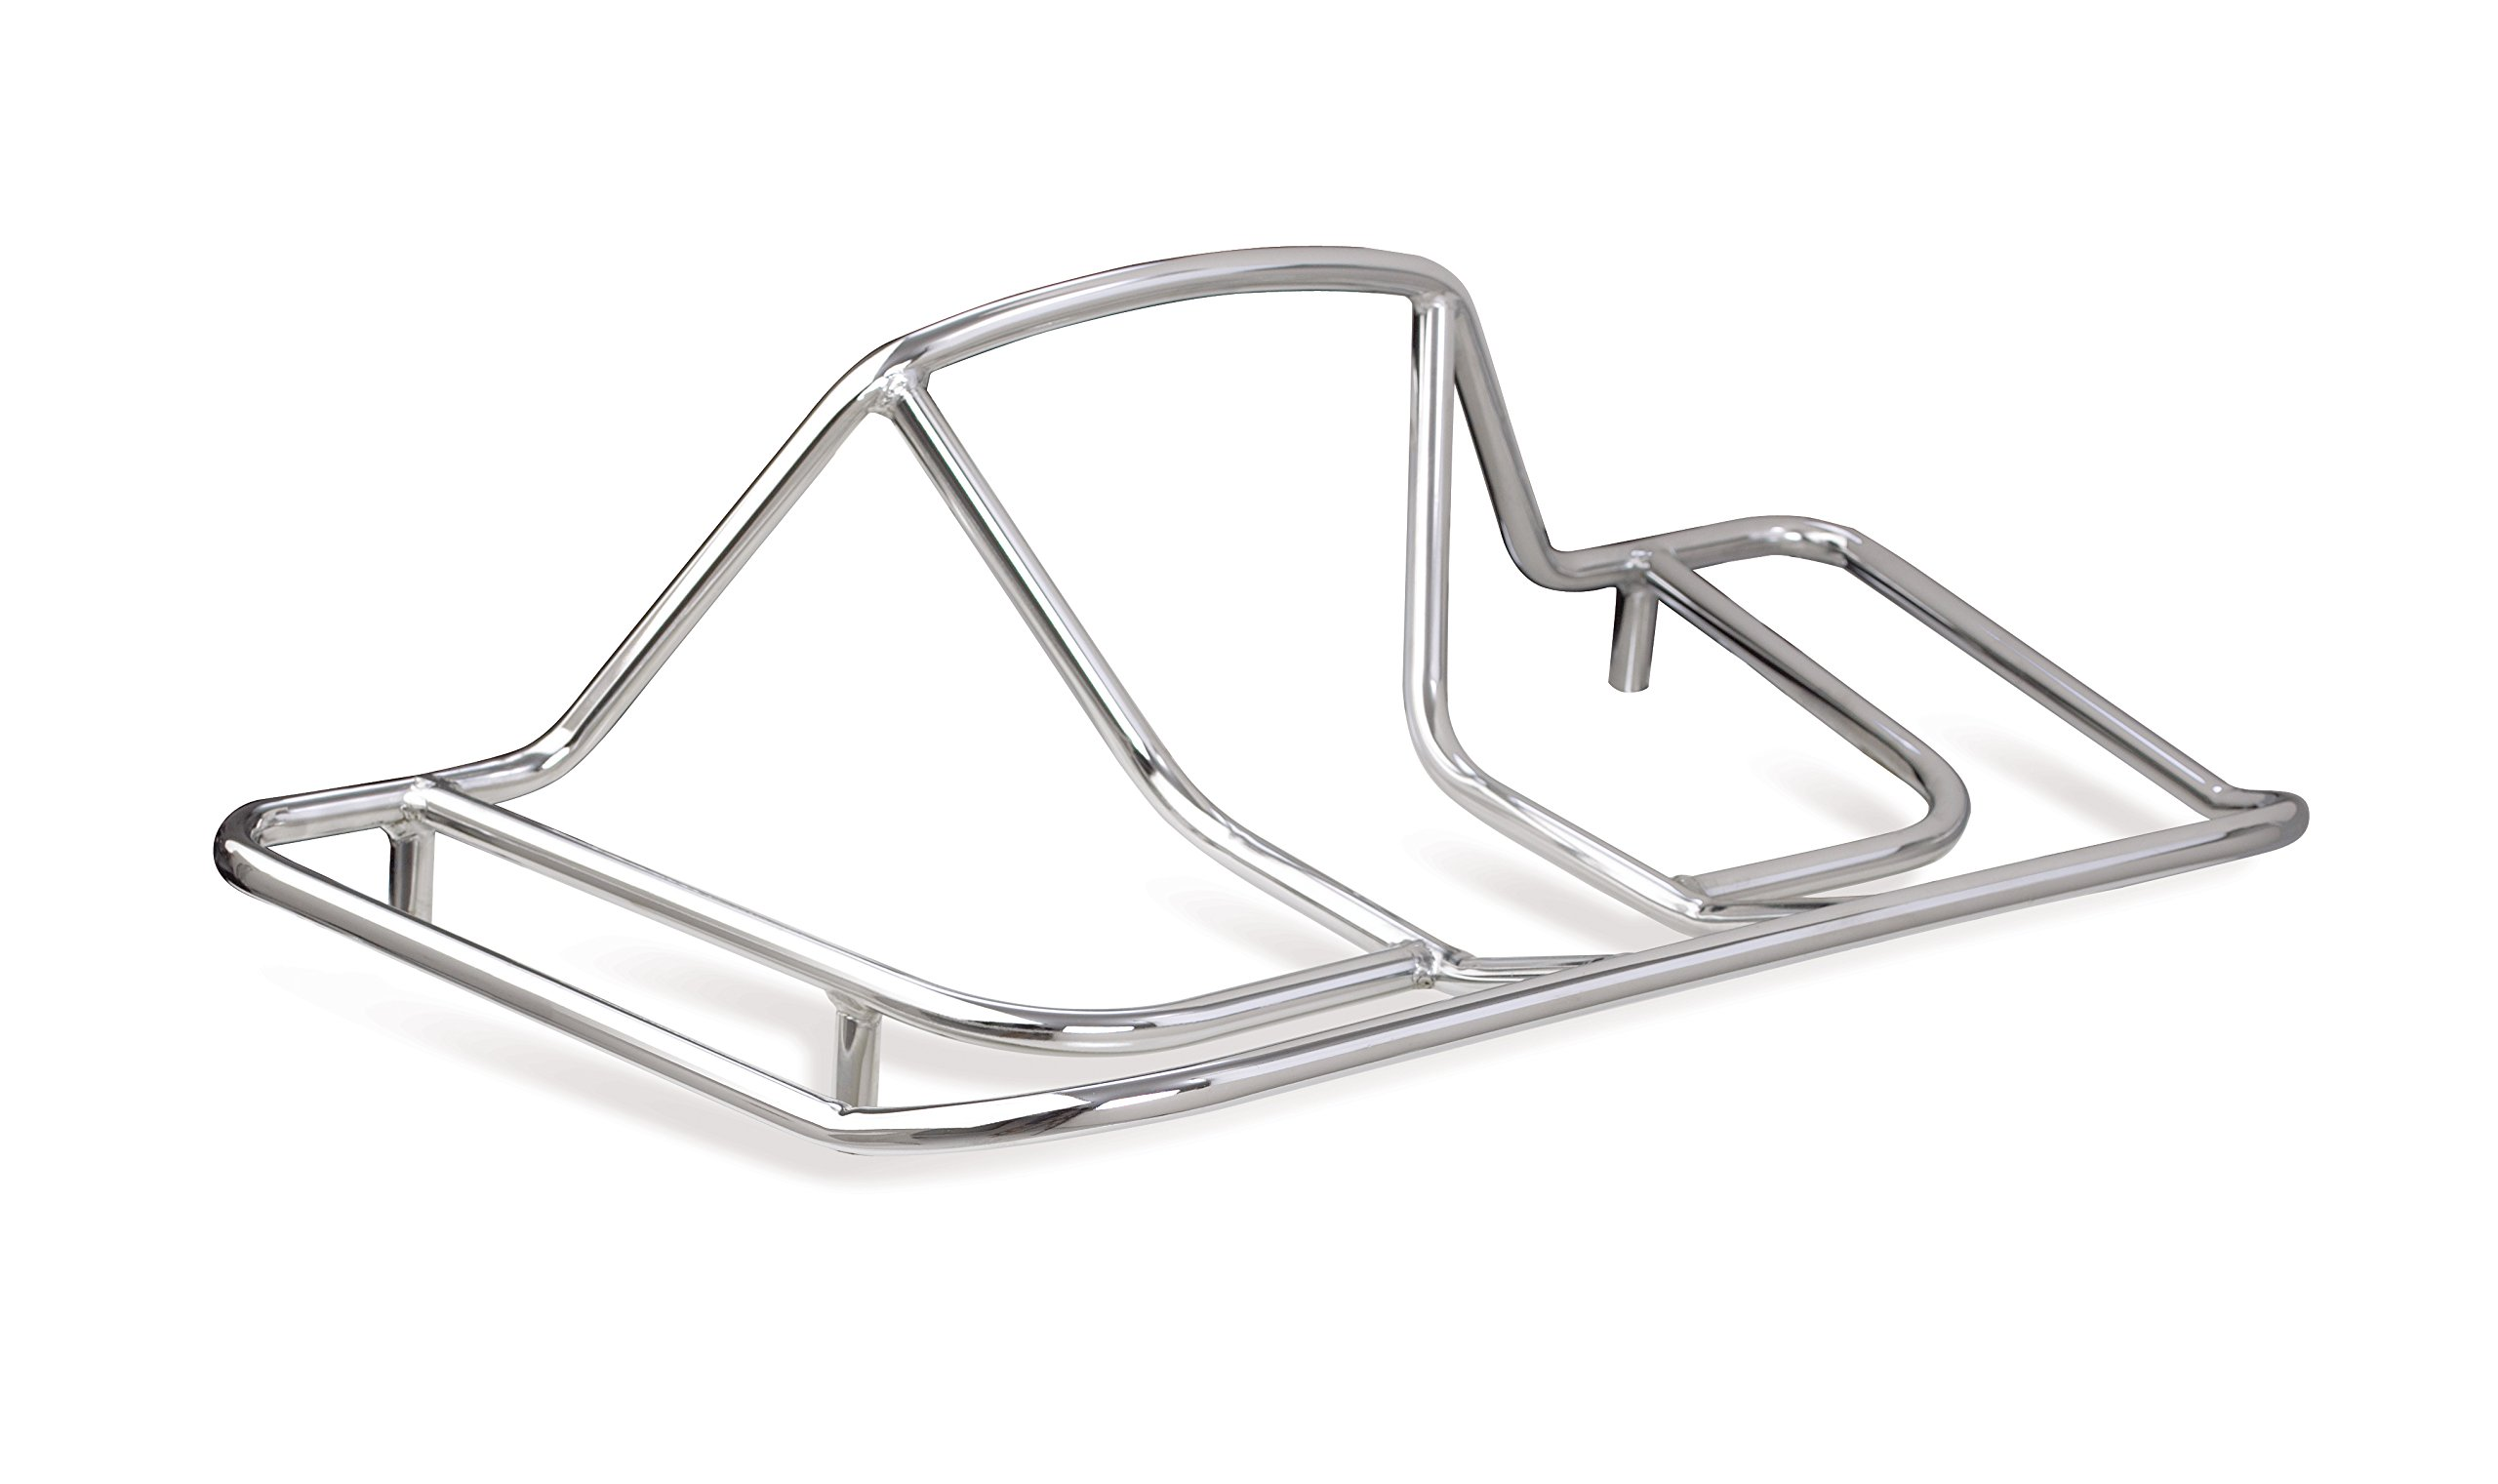 Show Chrome Accessories 52-610 Deluxe Trunk Luggage Rack